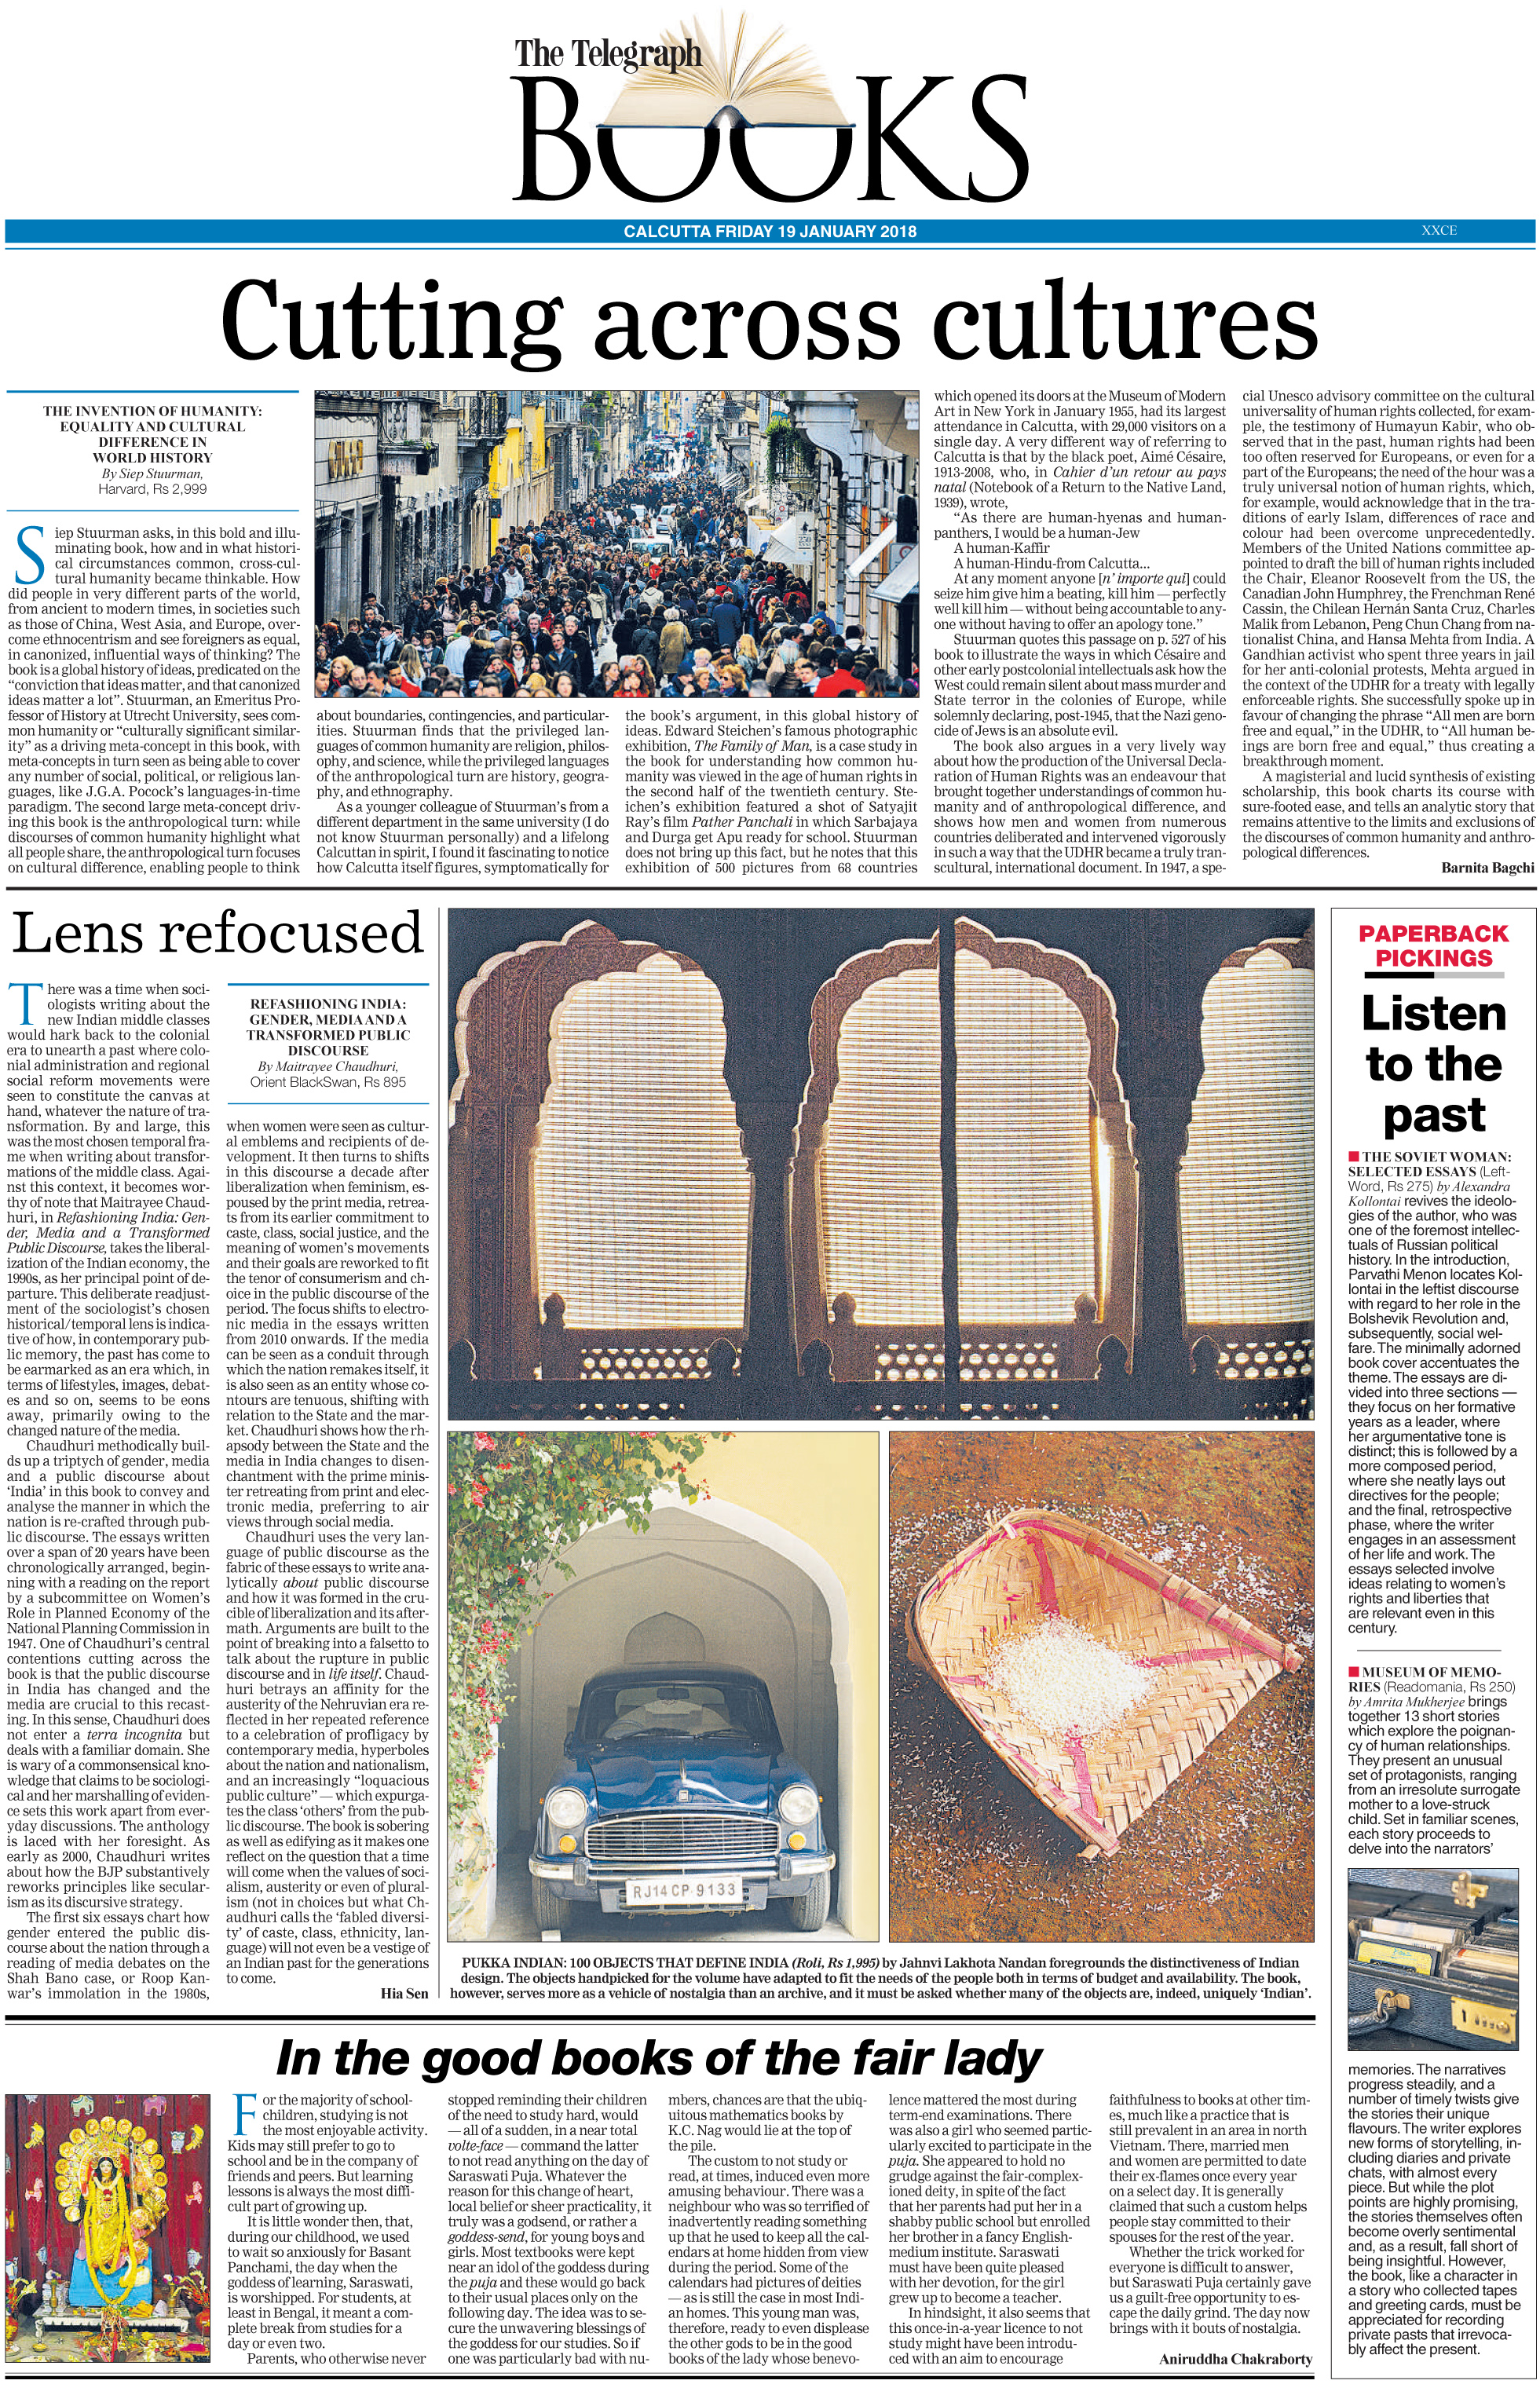 Pukka Indian<br><span>The Telegraph, Kolkata</span>